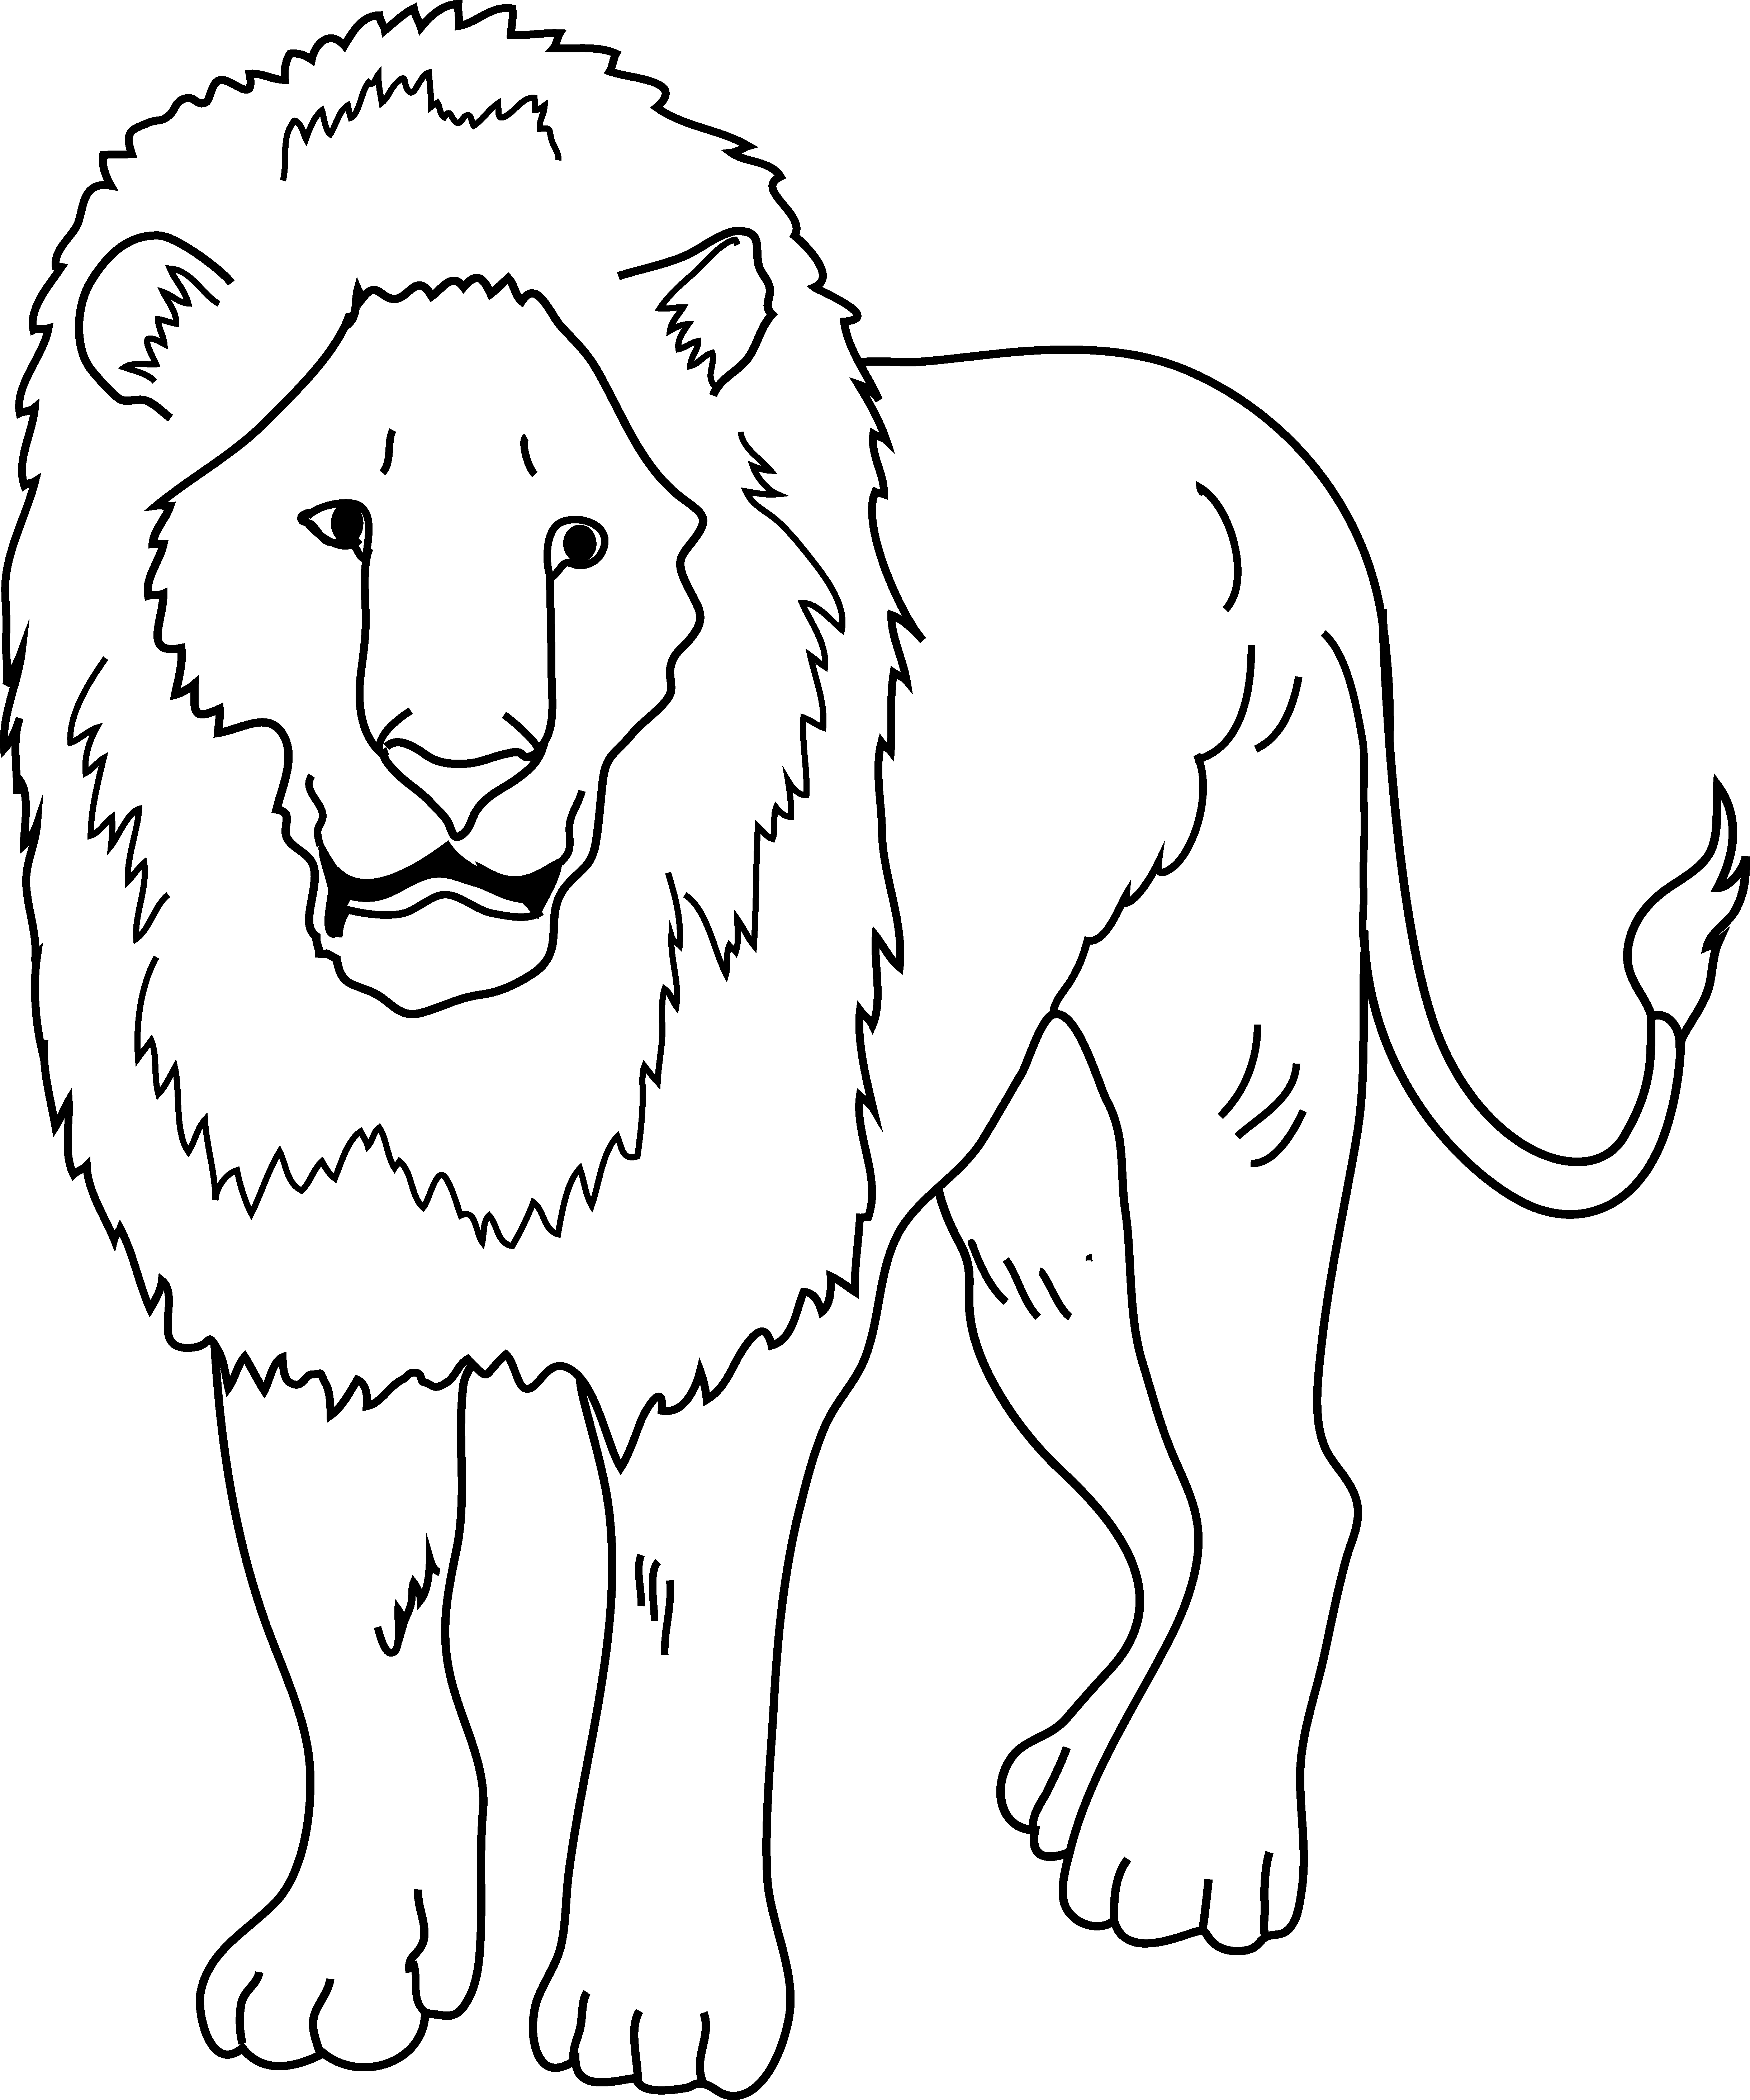 Lion Clipart Black And White Lion Black And White Transparent Free For Download On Webstockreview 2020 Outline design lion black roar wild lion over tree branch and africa continent. webstockreview